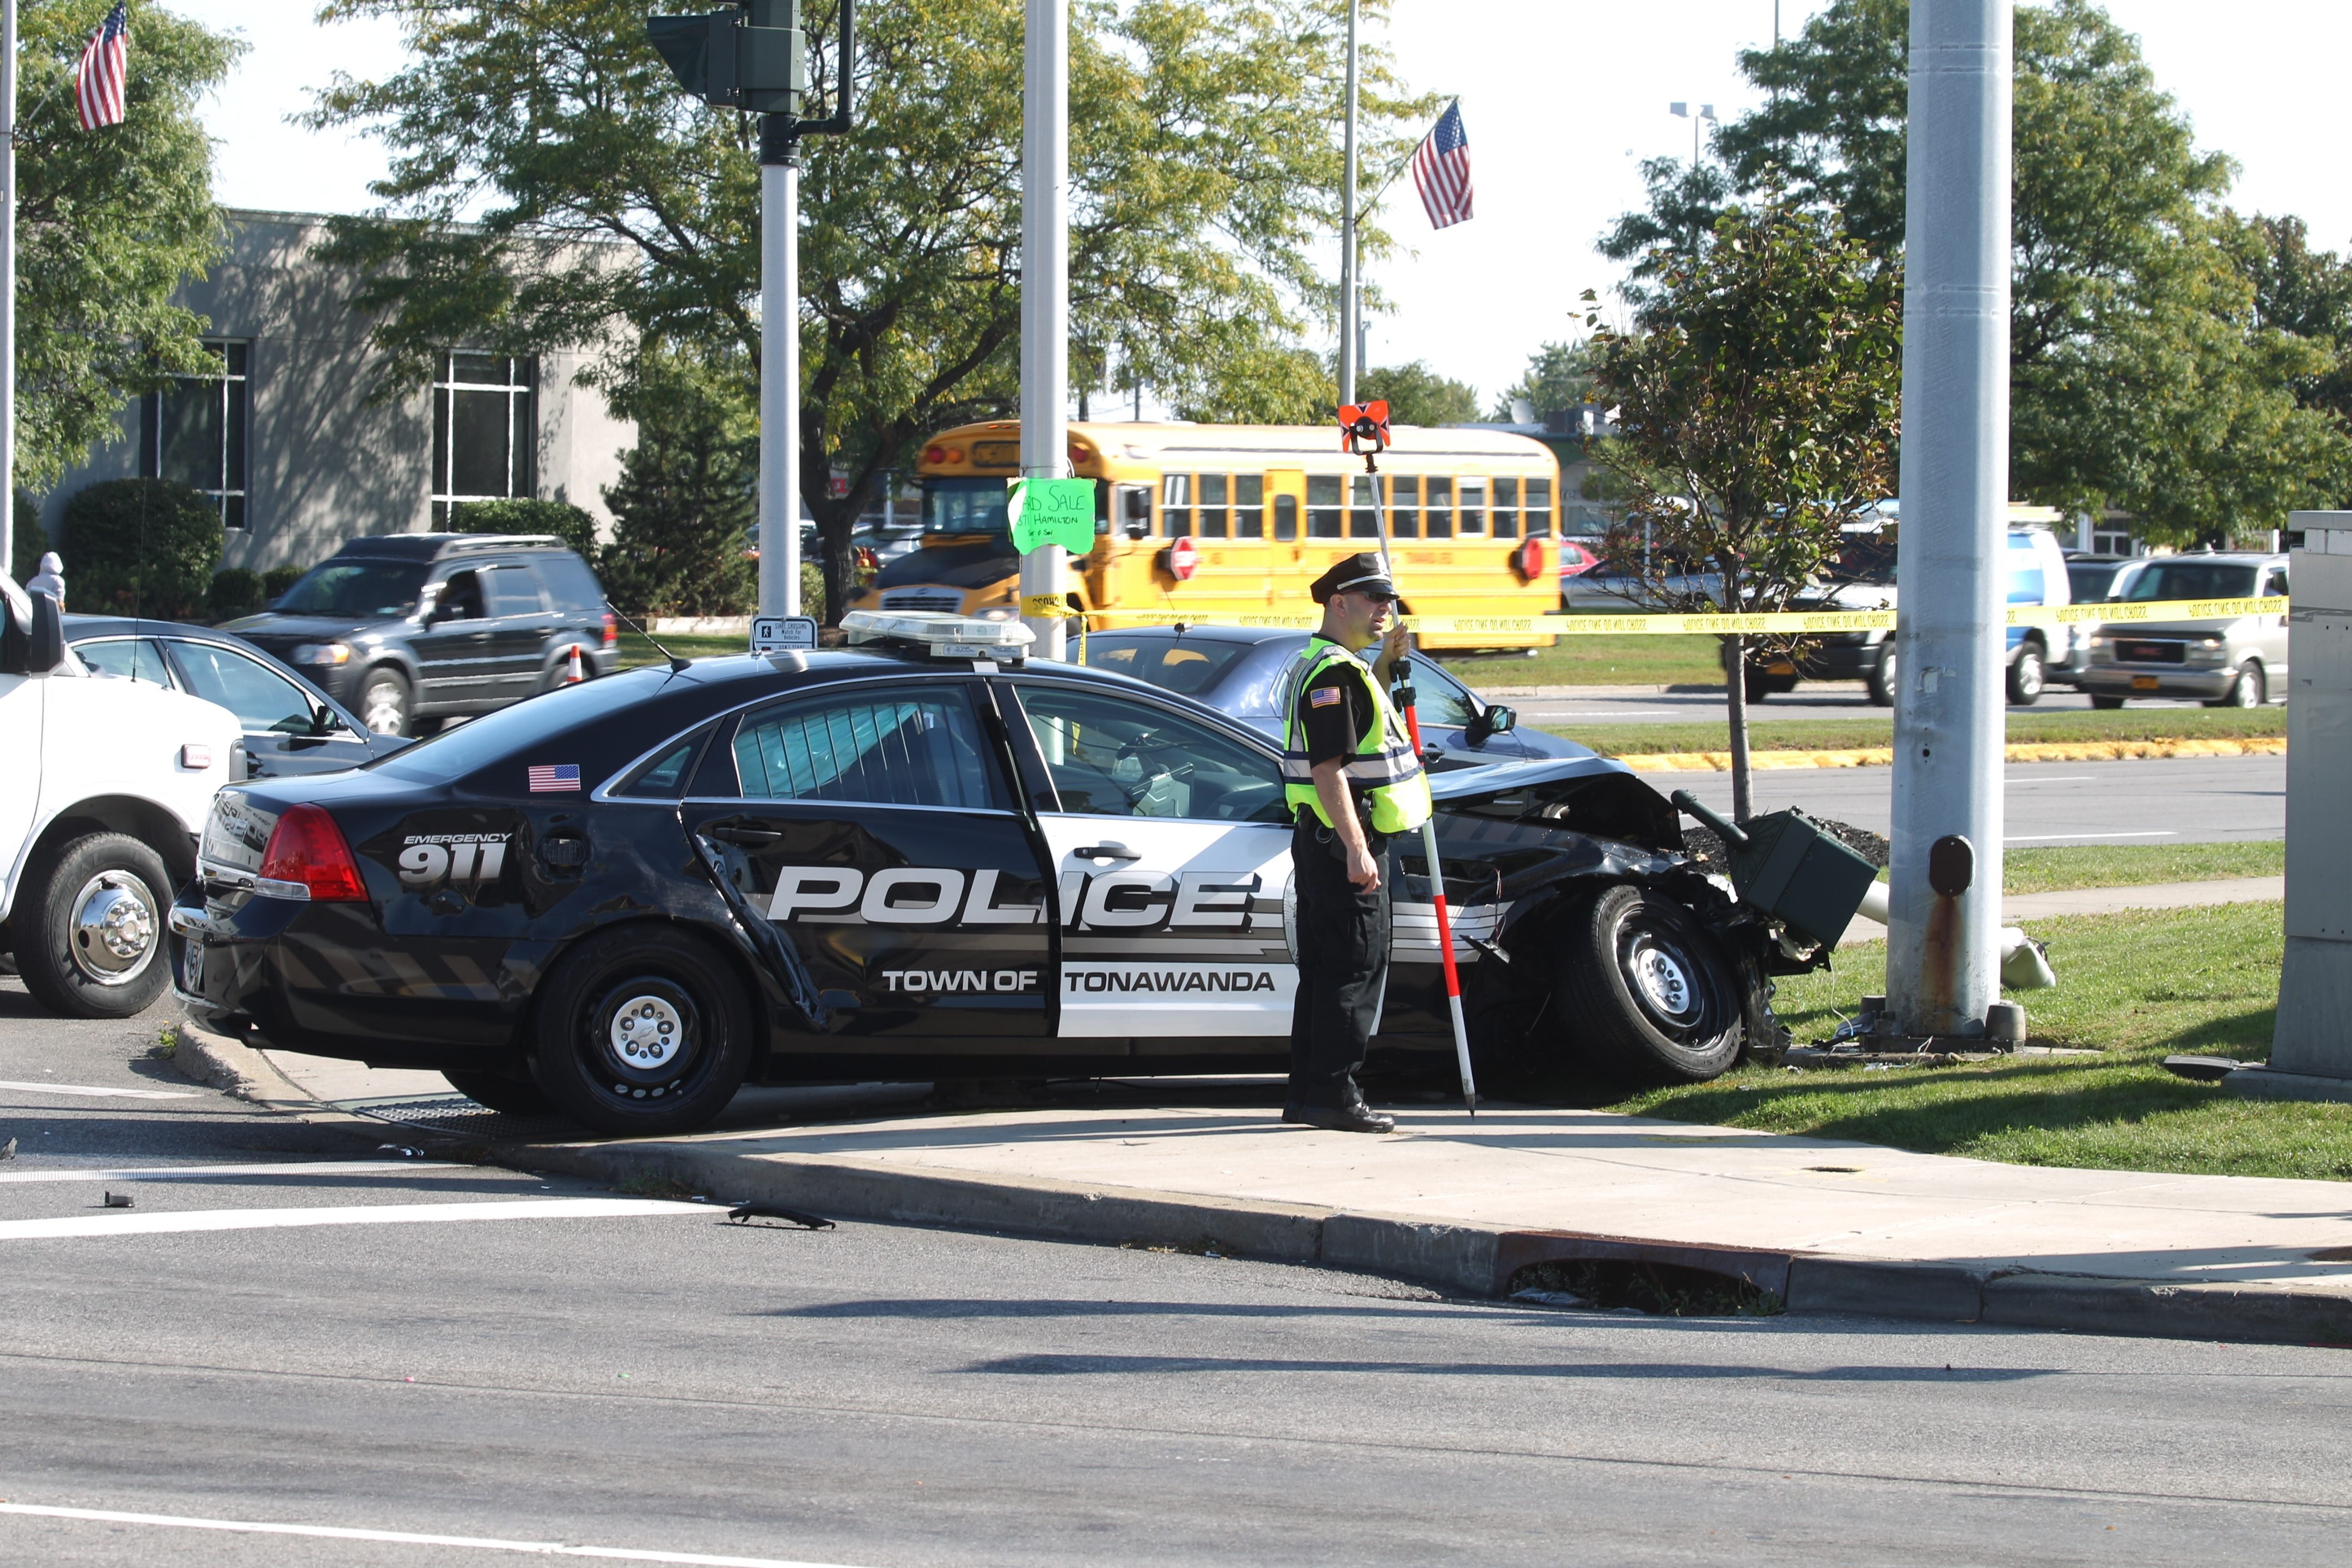 A motor vehicle accident between a Town of Tonawanda Police car responding to a call and another vehicle at  Delaware Avenue and Sheridan Drive, sent the police officer to the hospital in Town of Tonawanda, N.Y., on Thursday,  Sept. 24, 2015.     (John Hickey/Buffalo News)